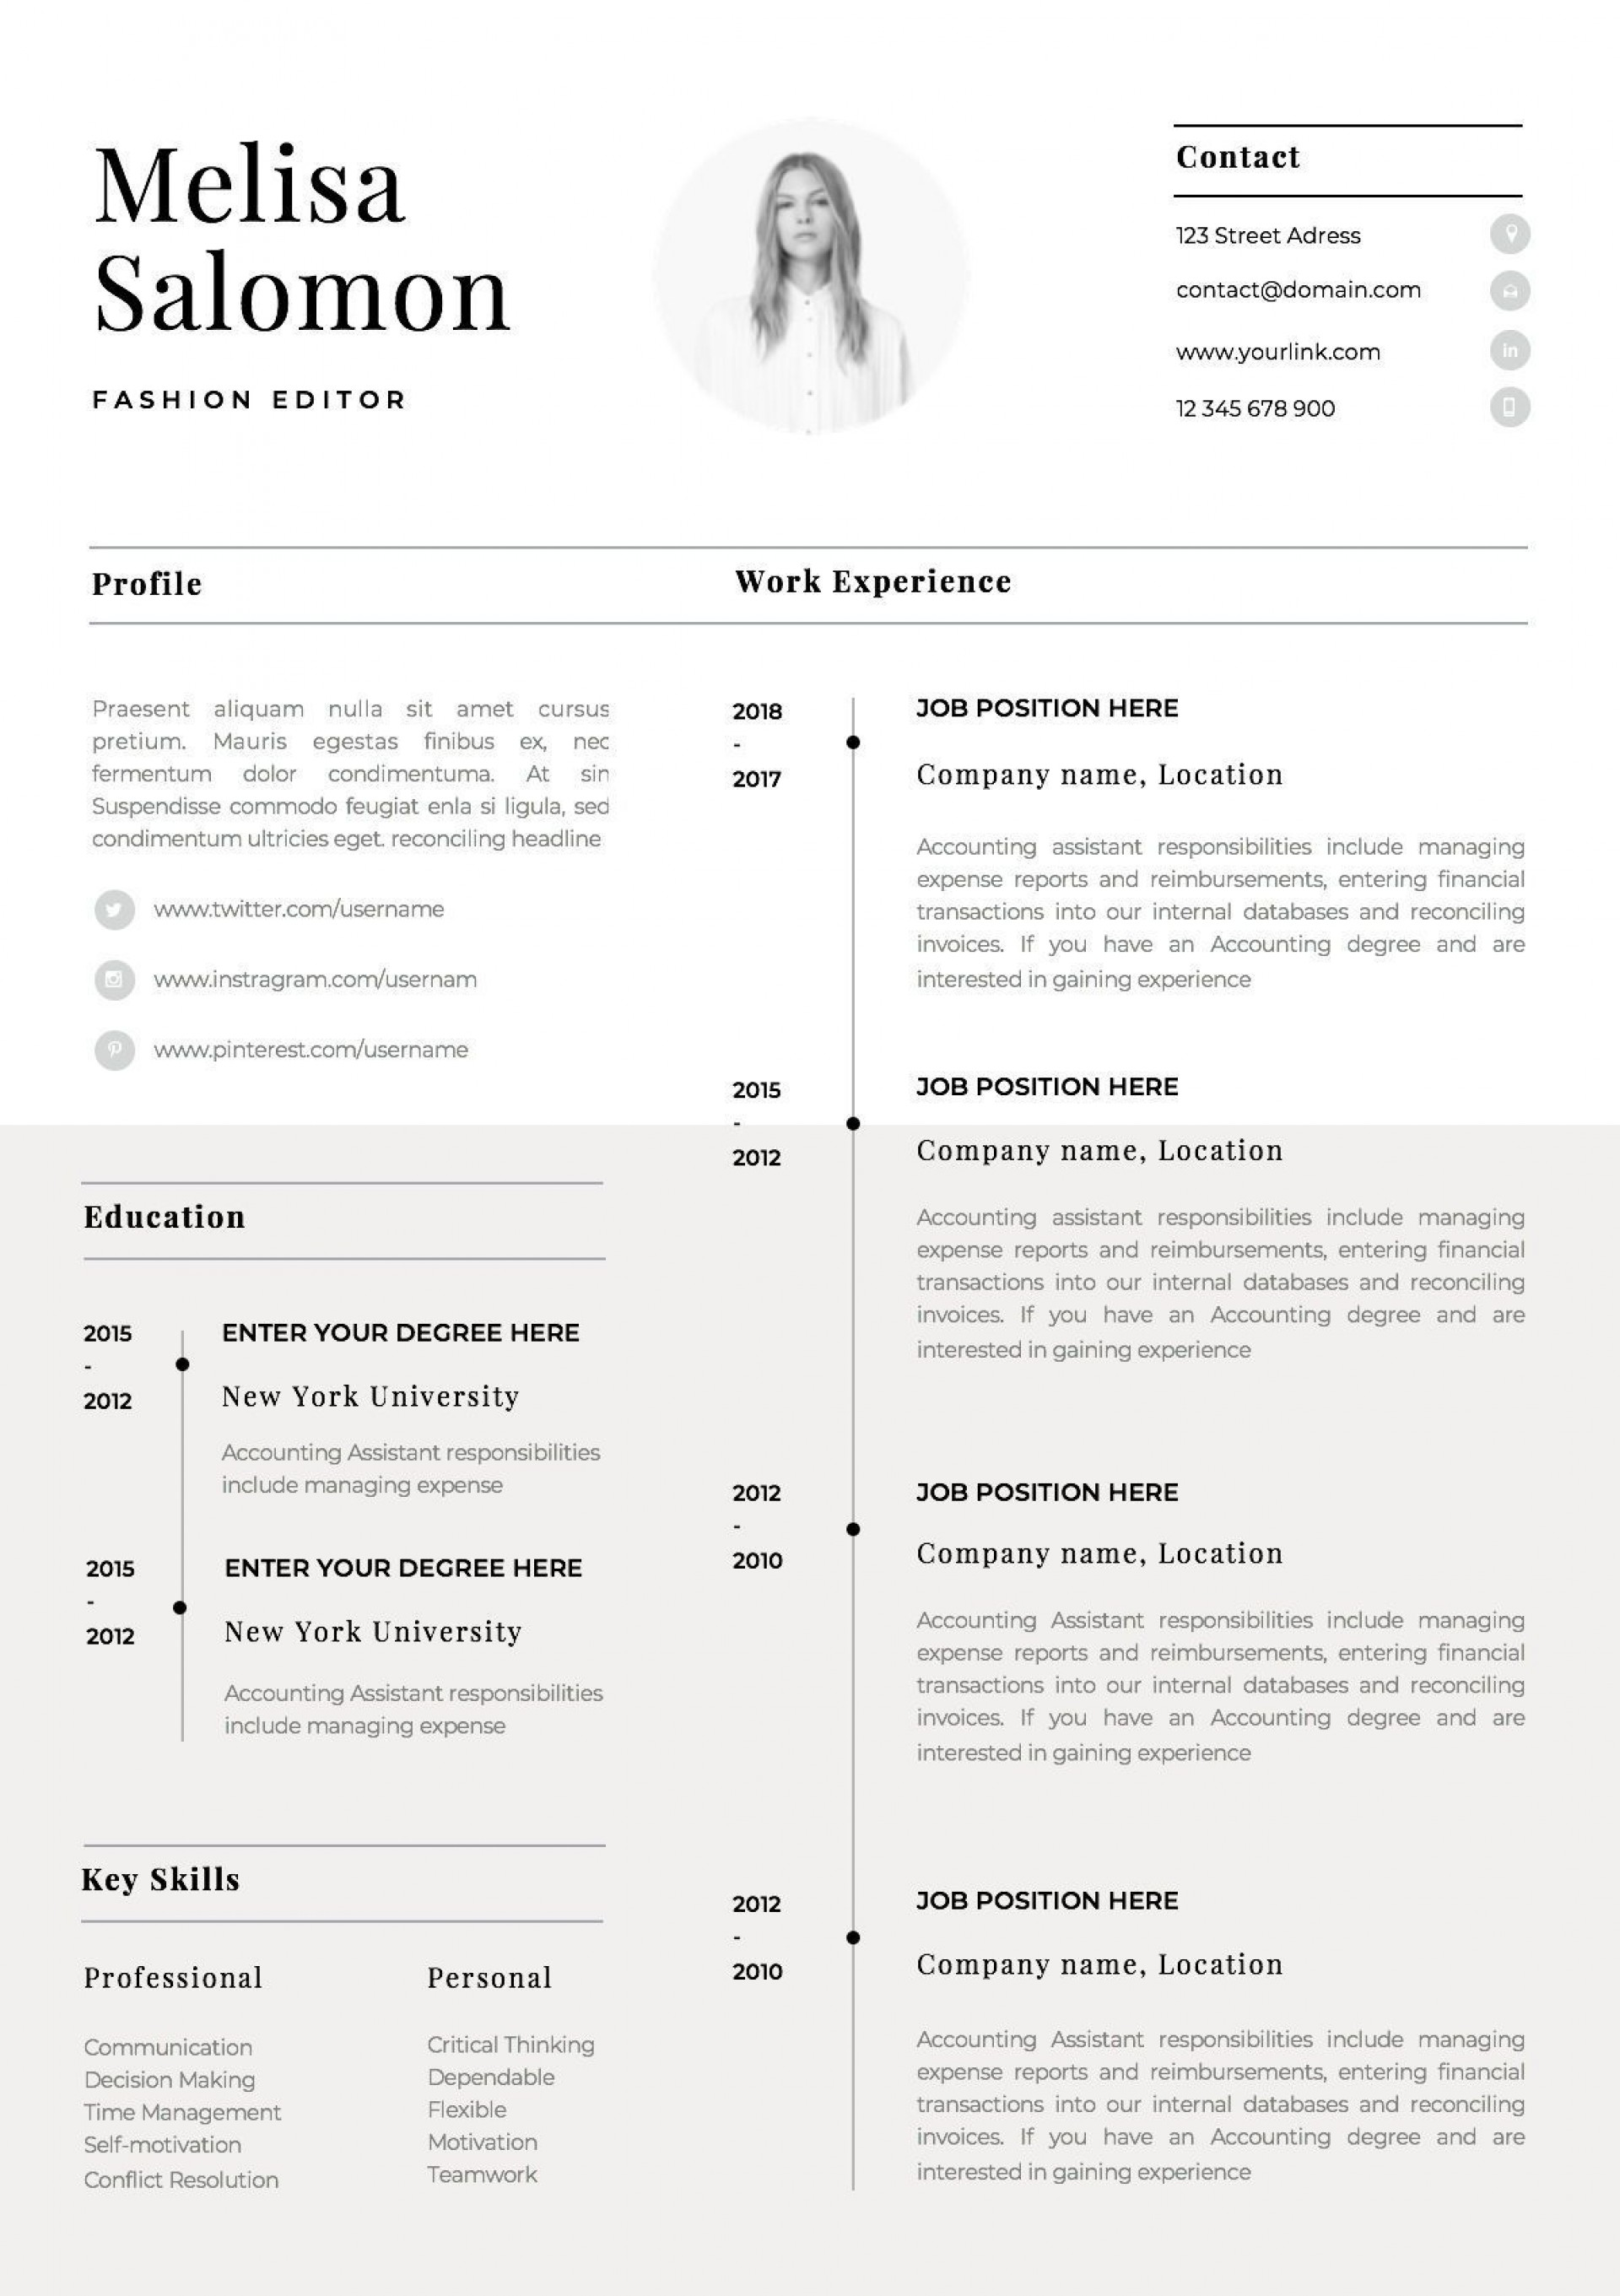 000 Exceptional Resume Template On Word Highest Quality  2007 Download 2016 How To Get 20101920